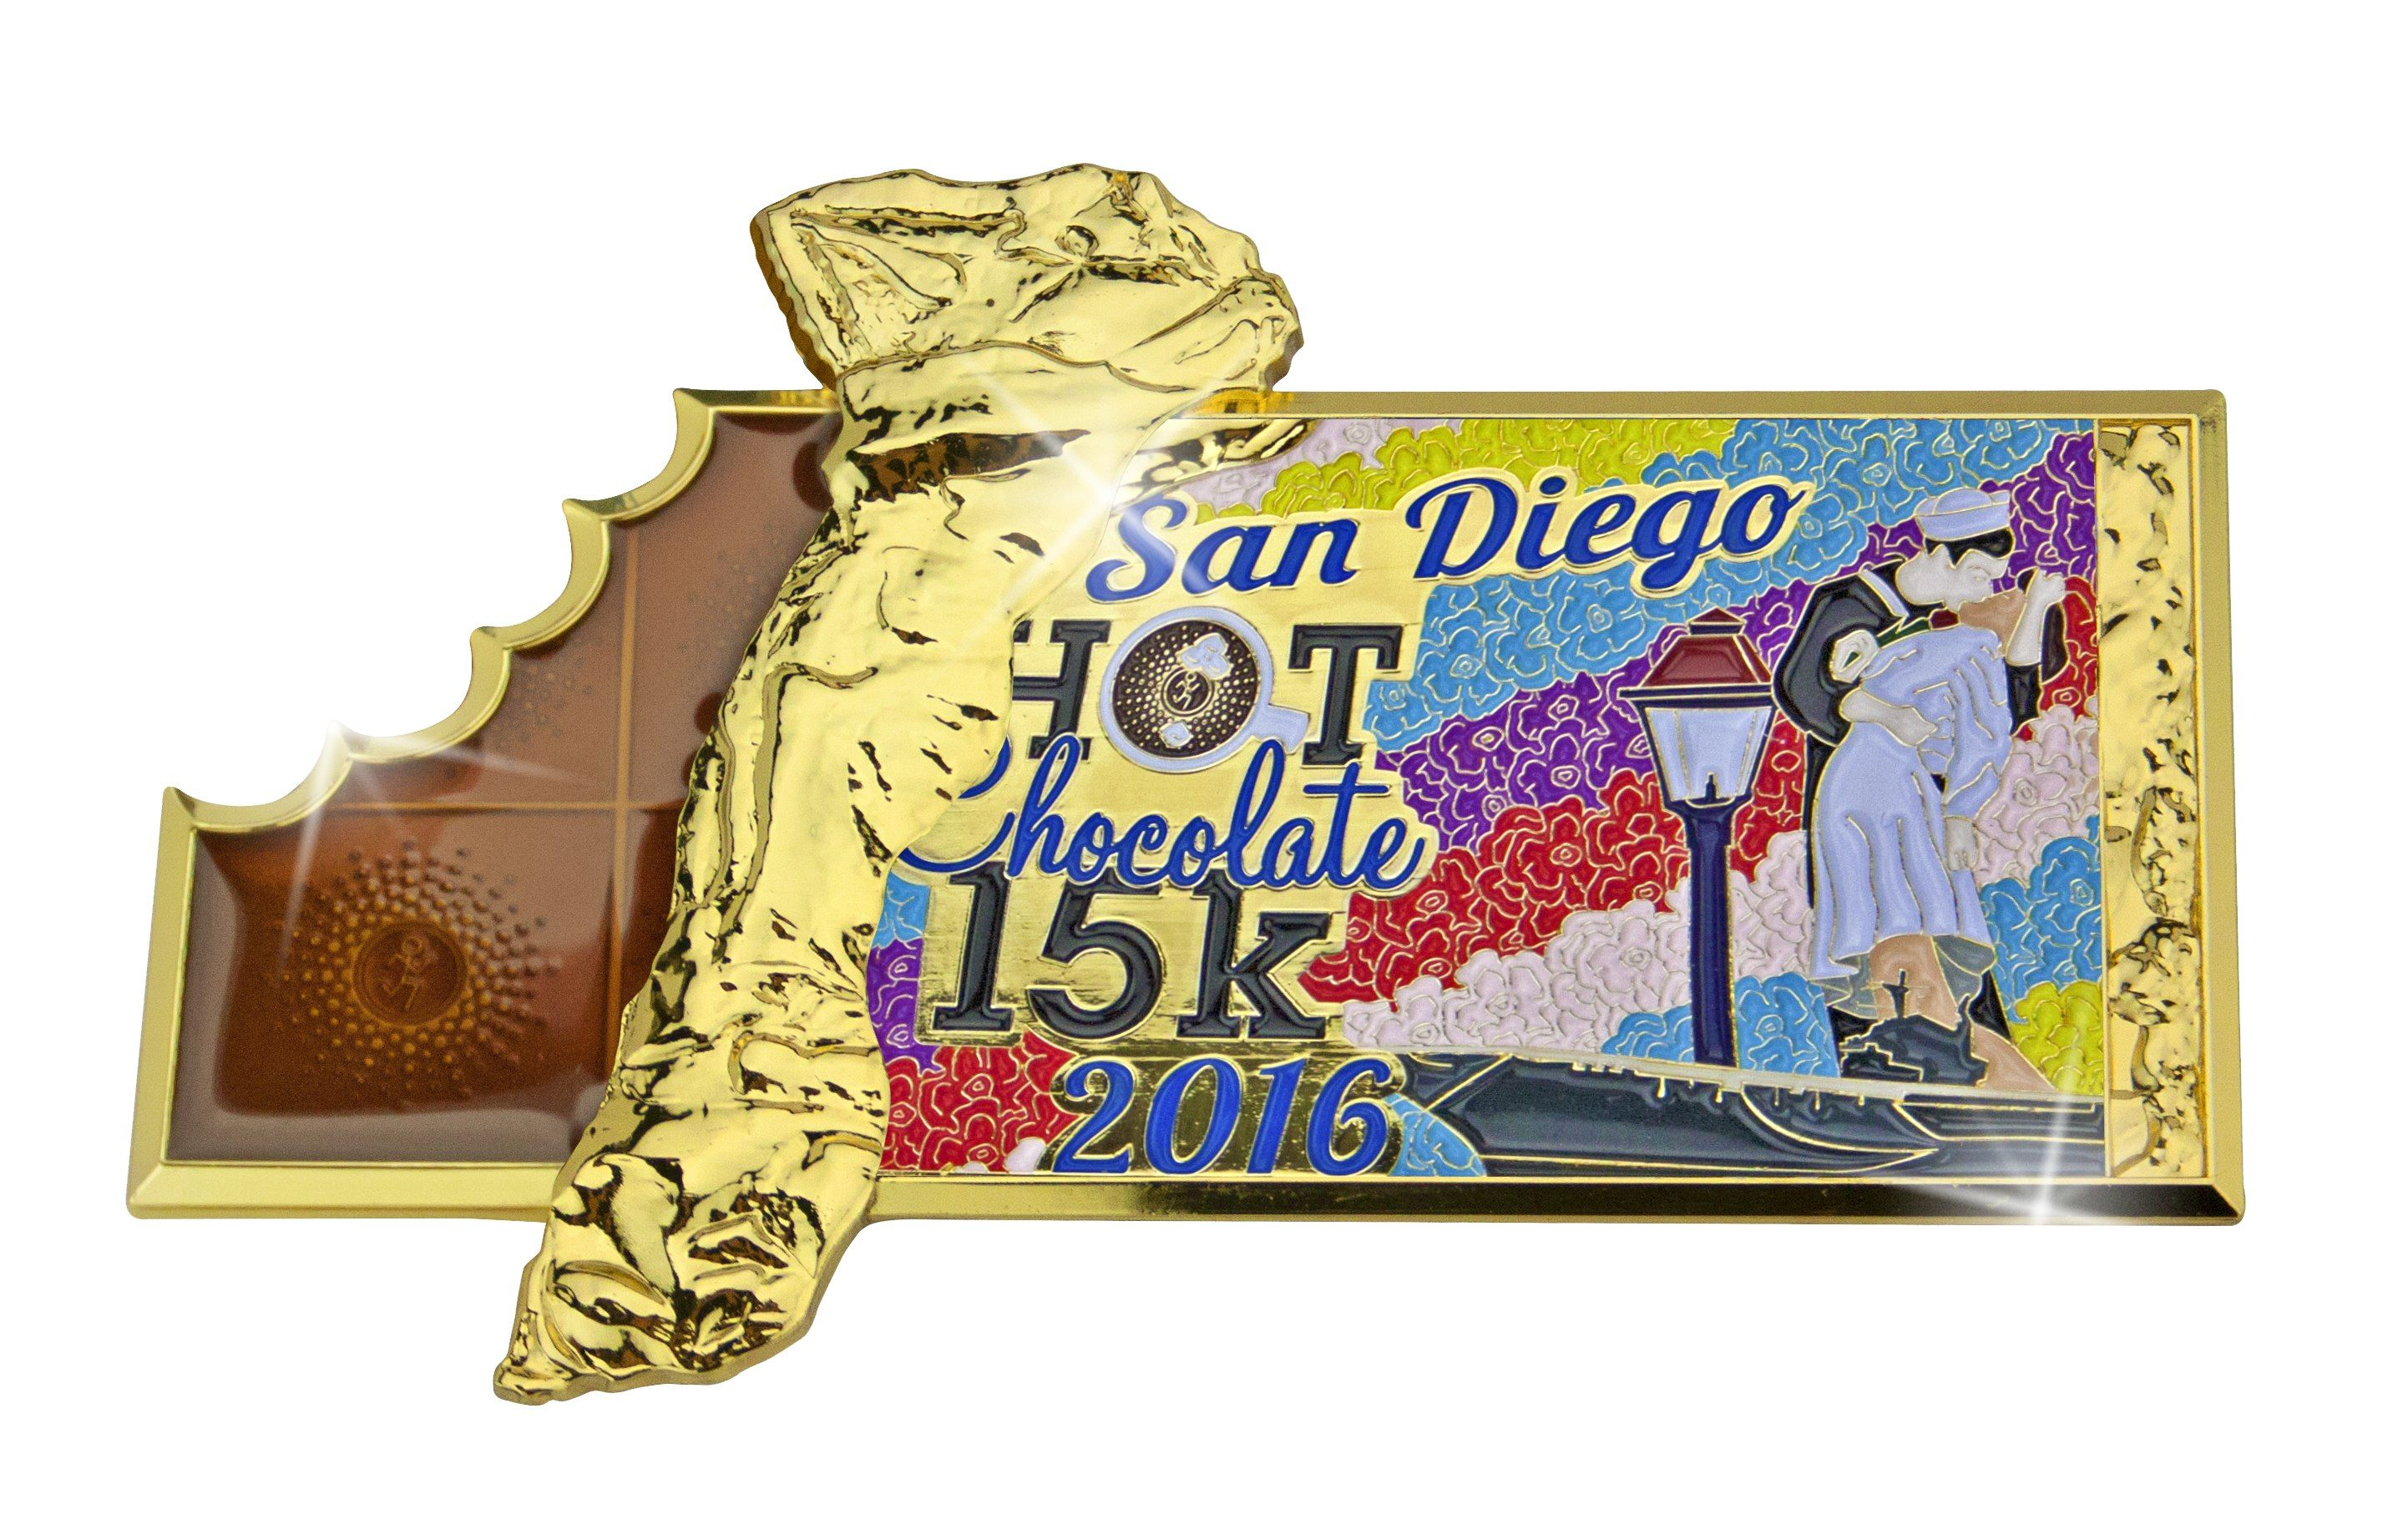 San Diego Hot Chocolate 15K | Future Half Marathons | Pinterest ...